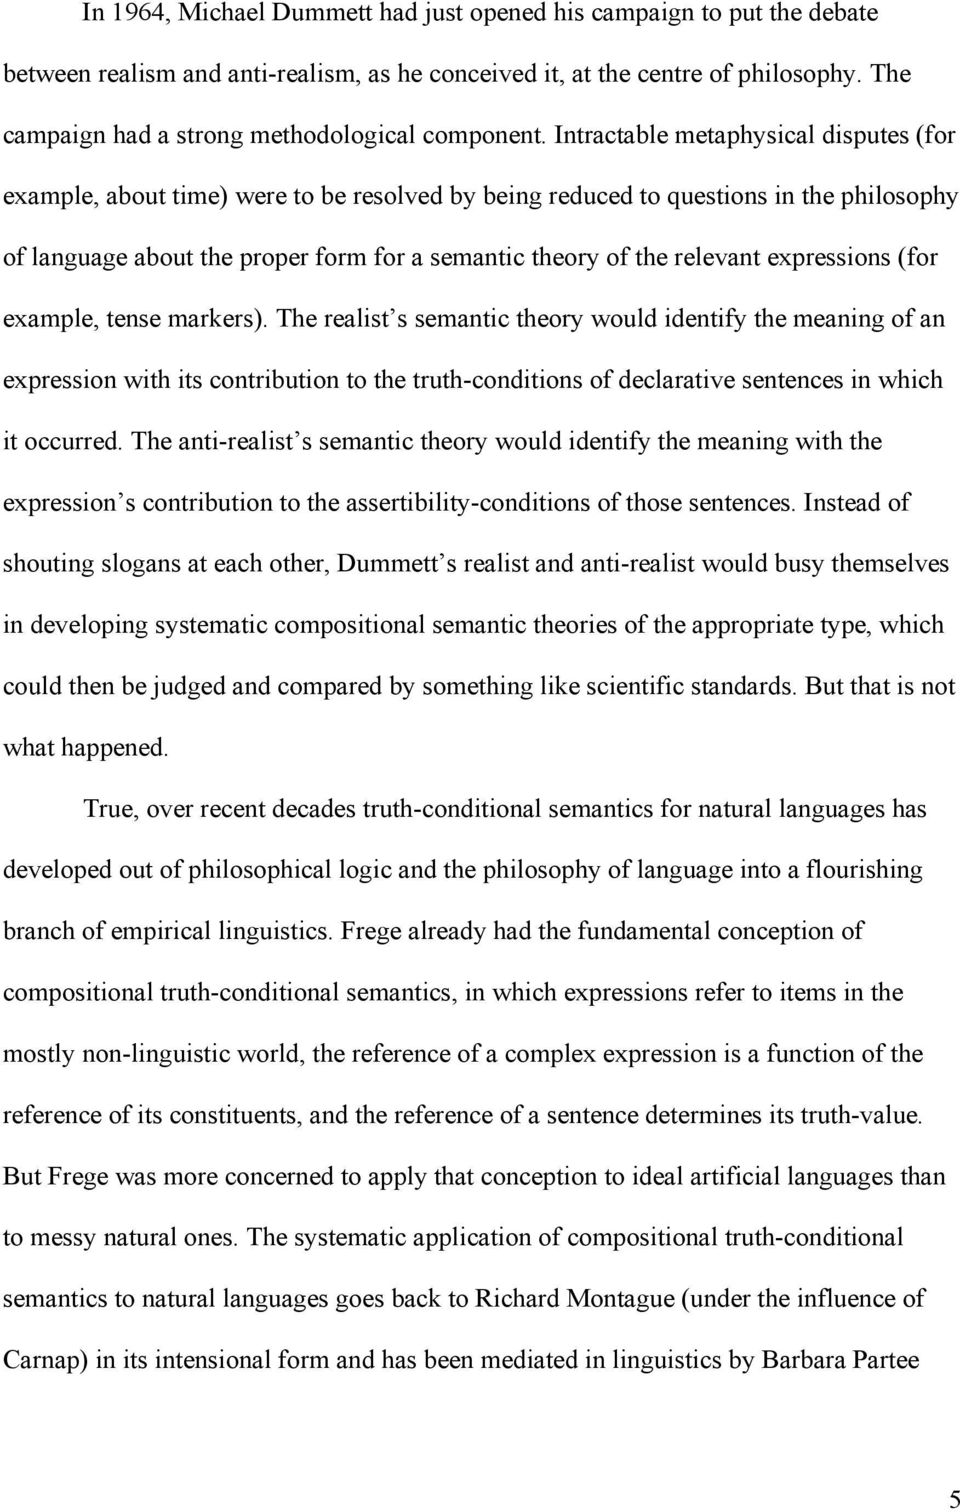 Intractable metaphysical disputes (for example, about time) were to be resolved by being reduced to questions in the philosophy of language about the proper form for a semantic theory of the relevant